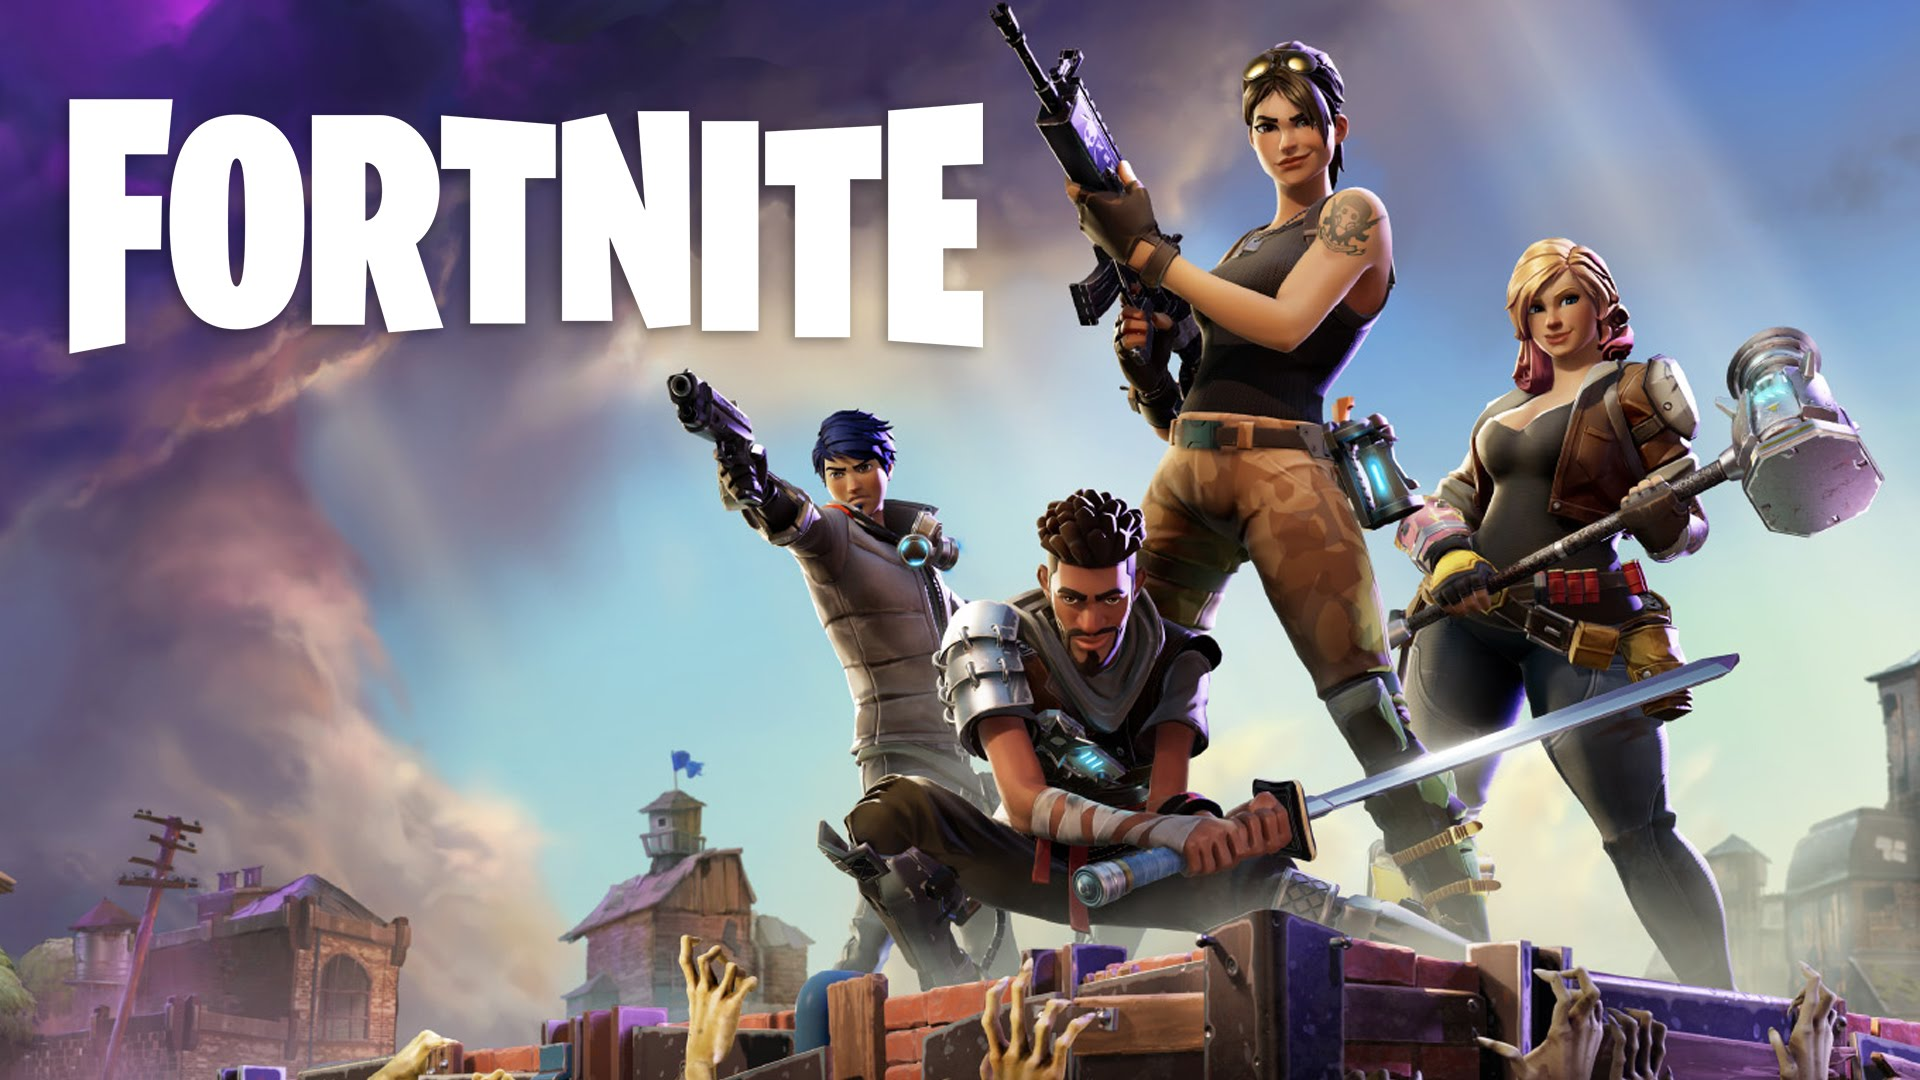 Fortnite en Android podría ser una exclusiva temporal del Galaxy Note 9